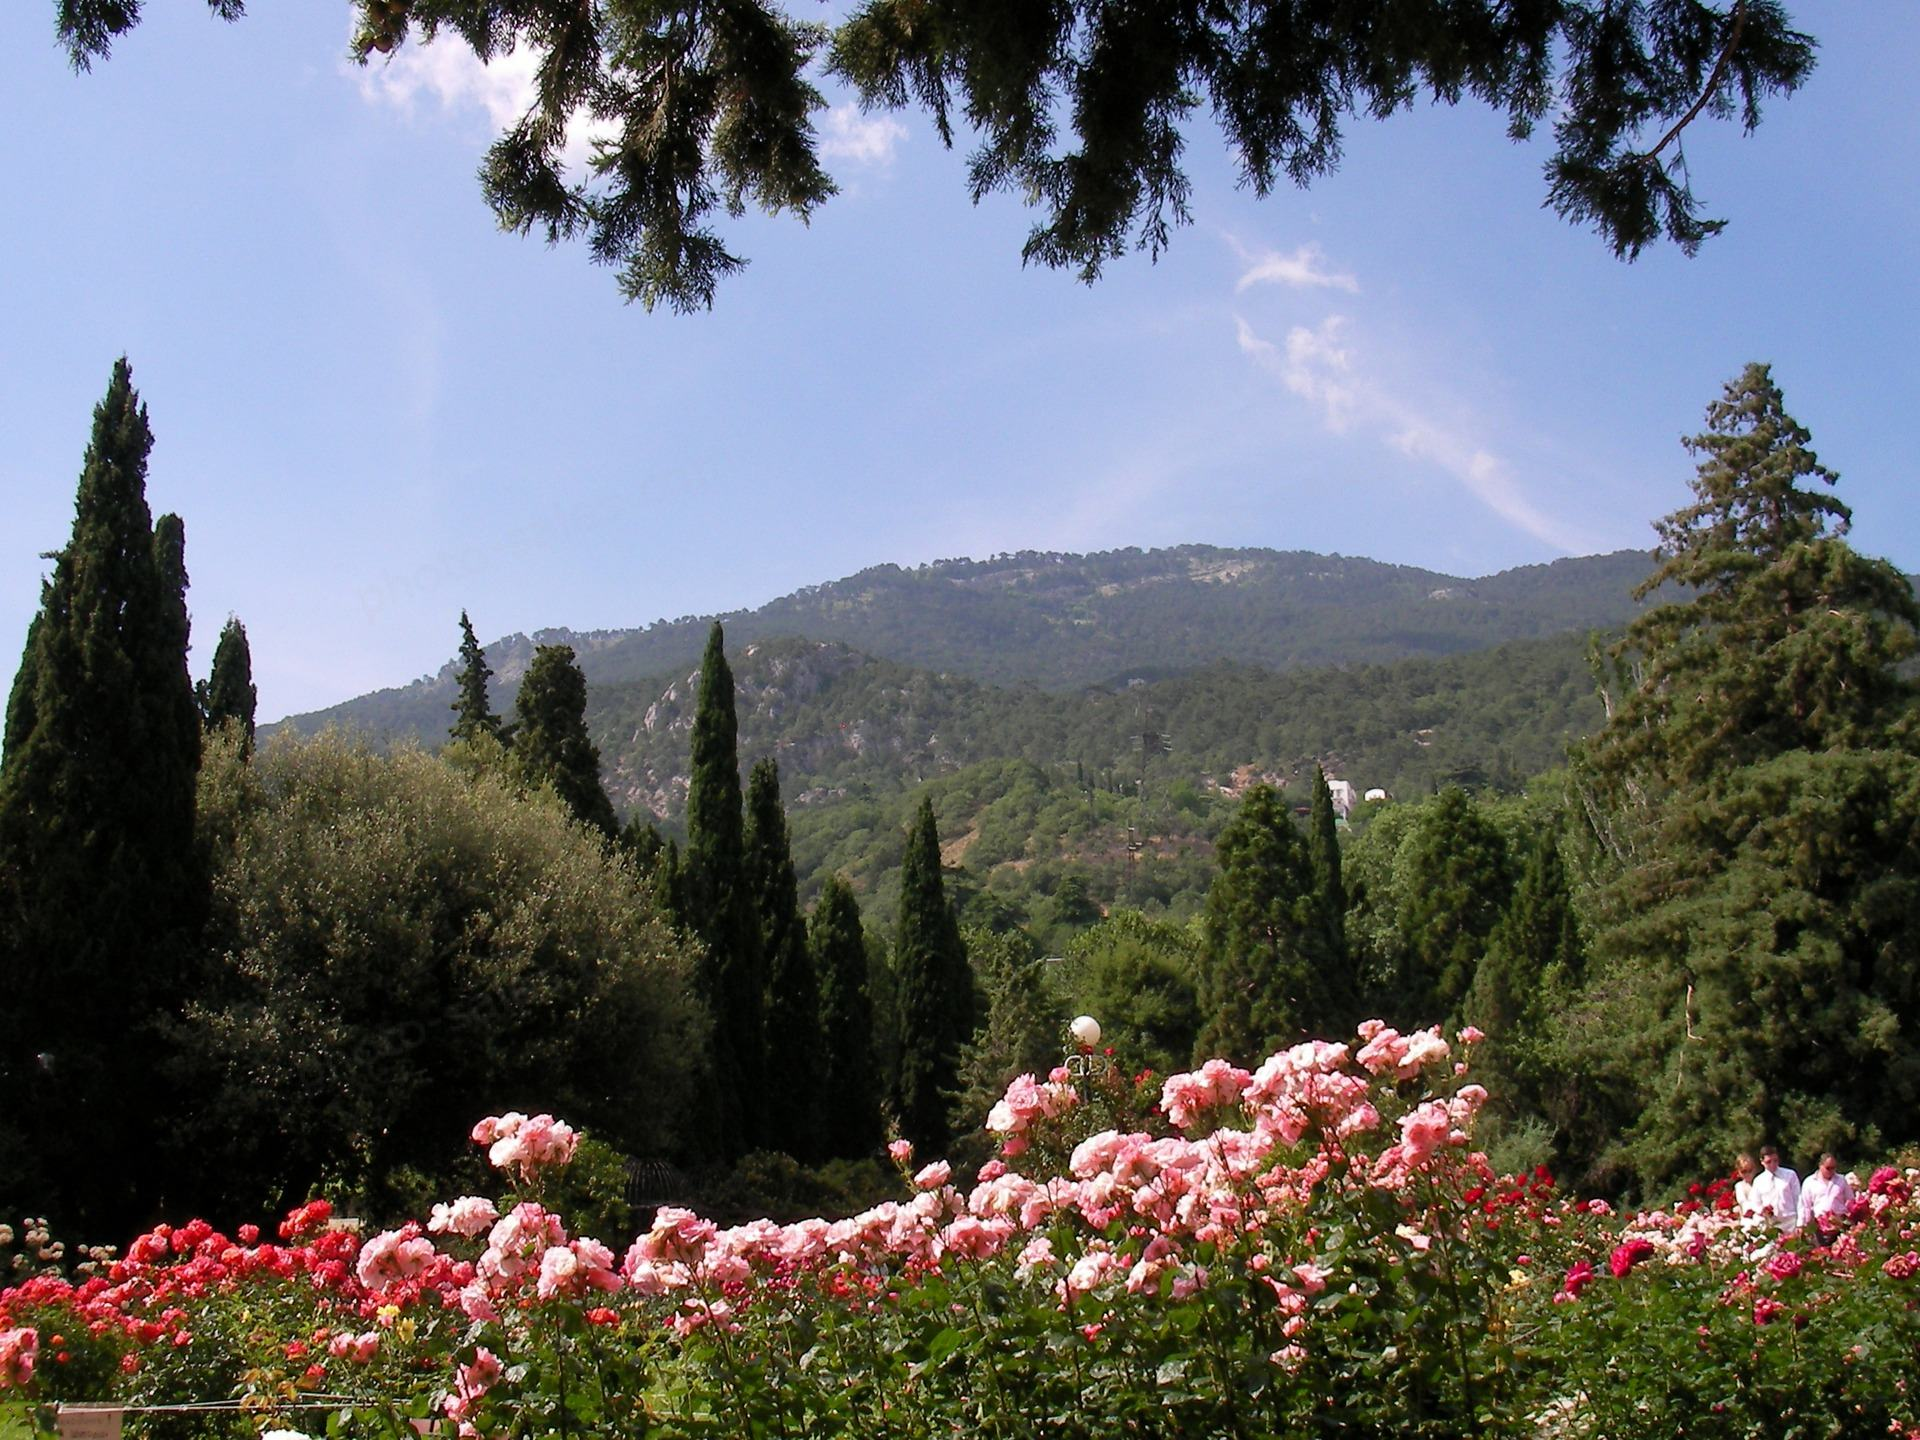 Roses and cypress before mountain under blue sky